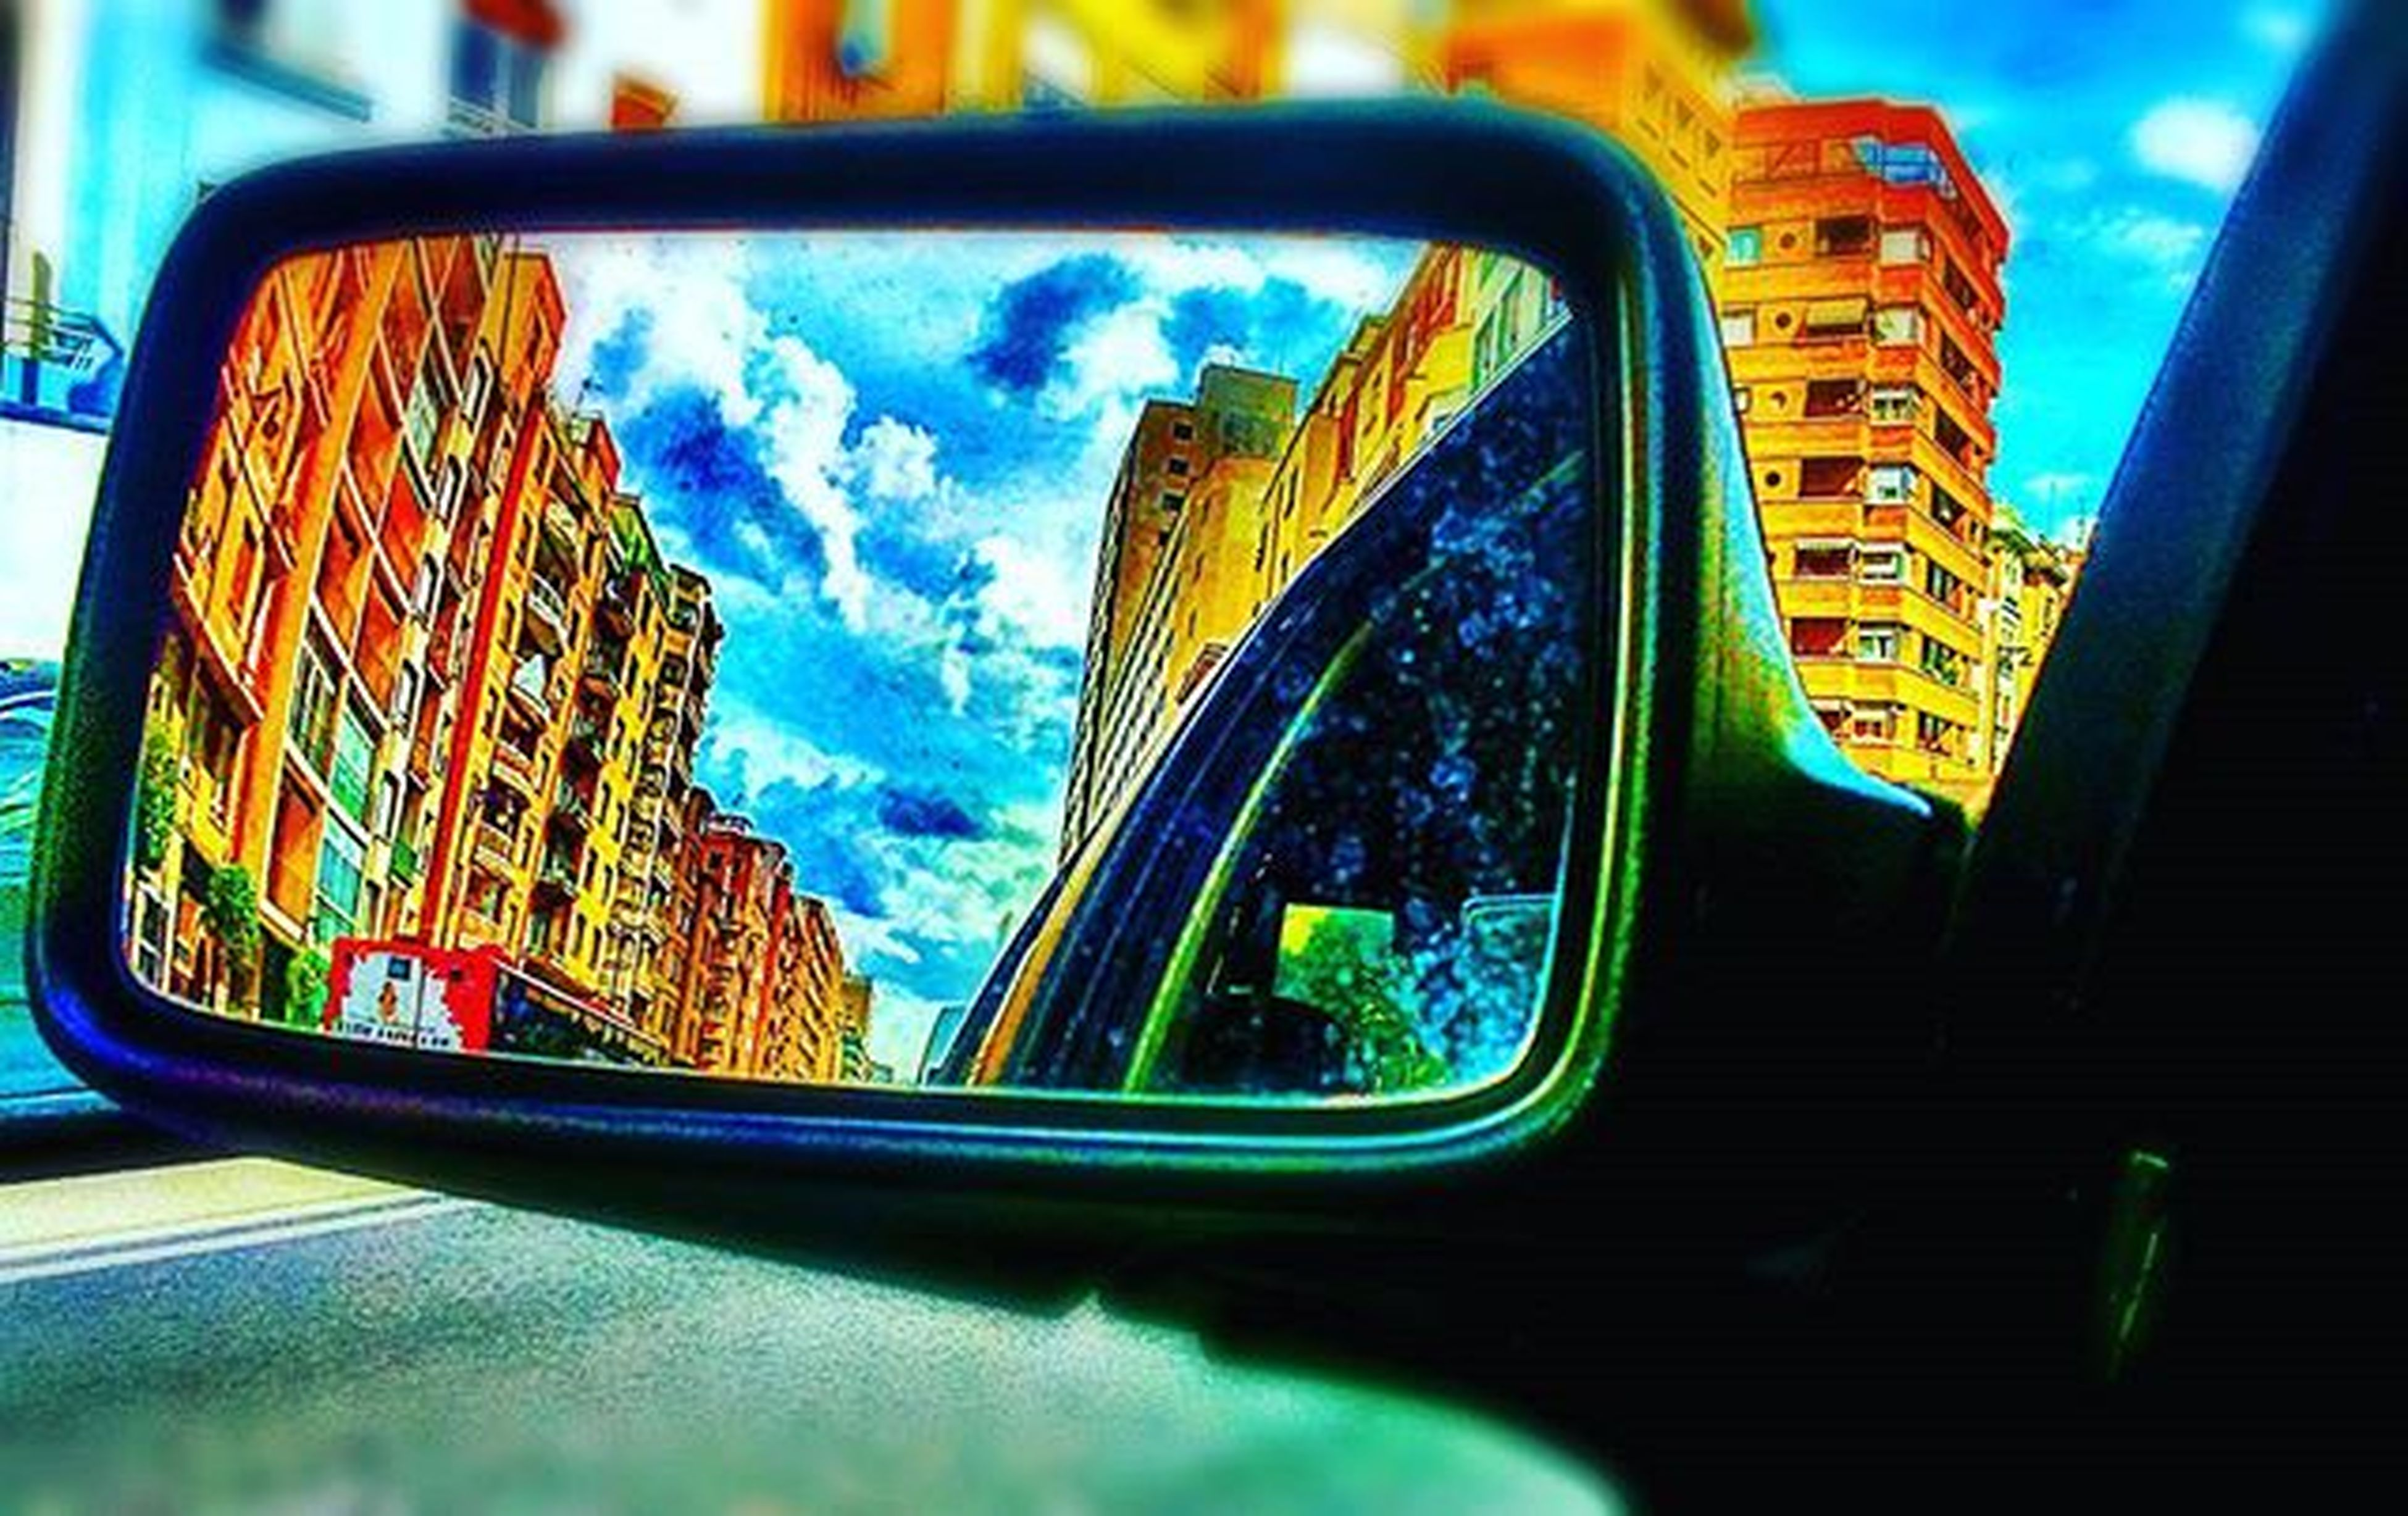 window, reflection, transportation, car, no people, day, low angle view, architecture, multi colored, sky, city, outdoors, close-up